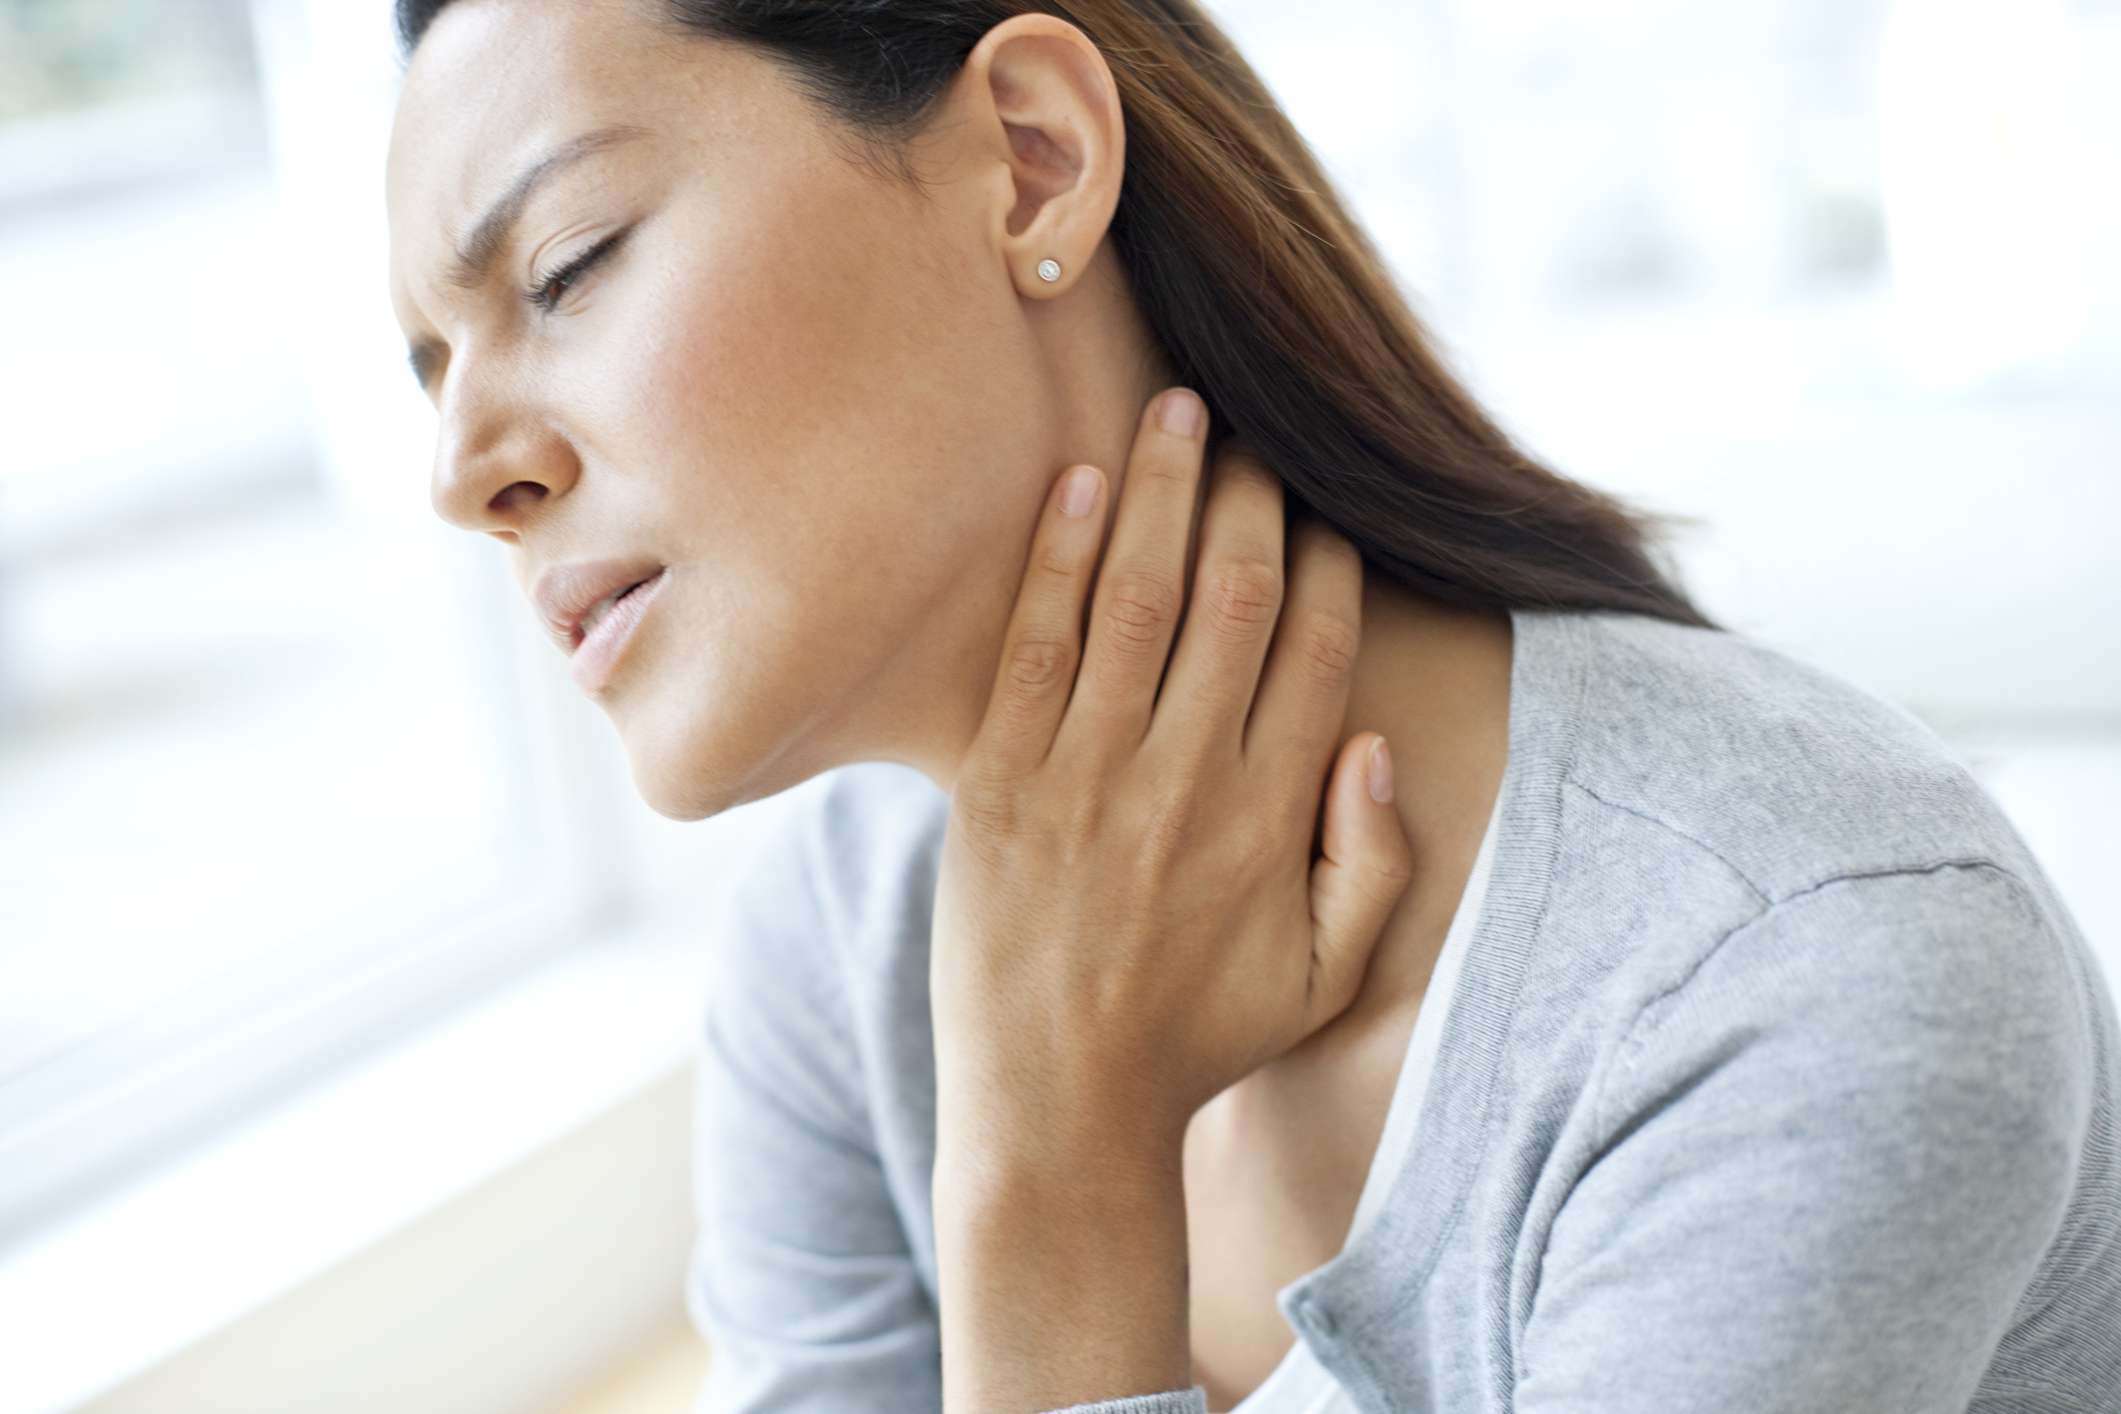 A woman in pain clutching the side of her neck